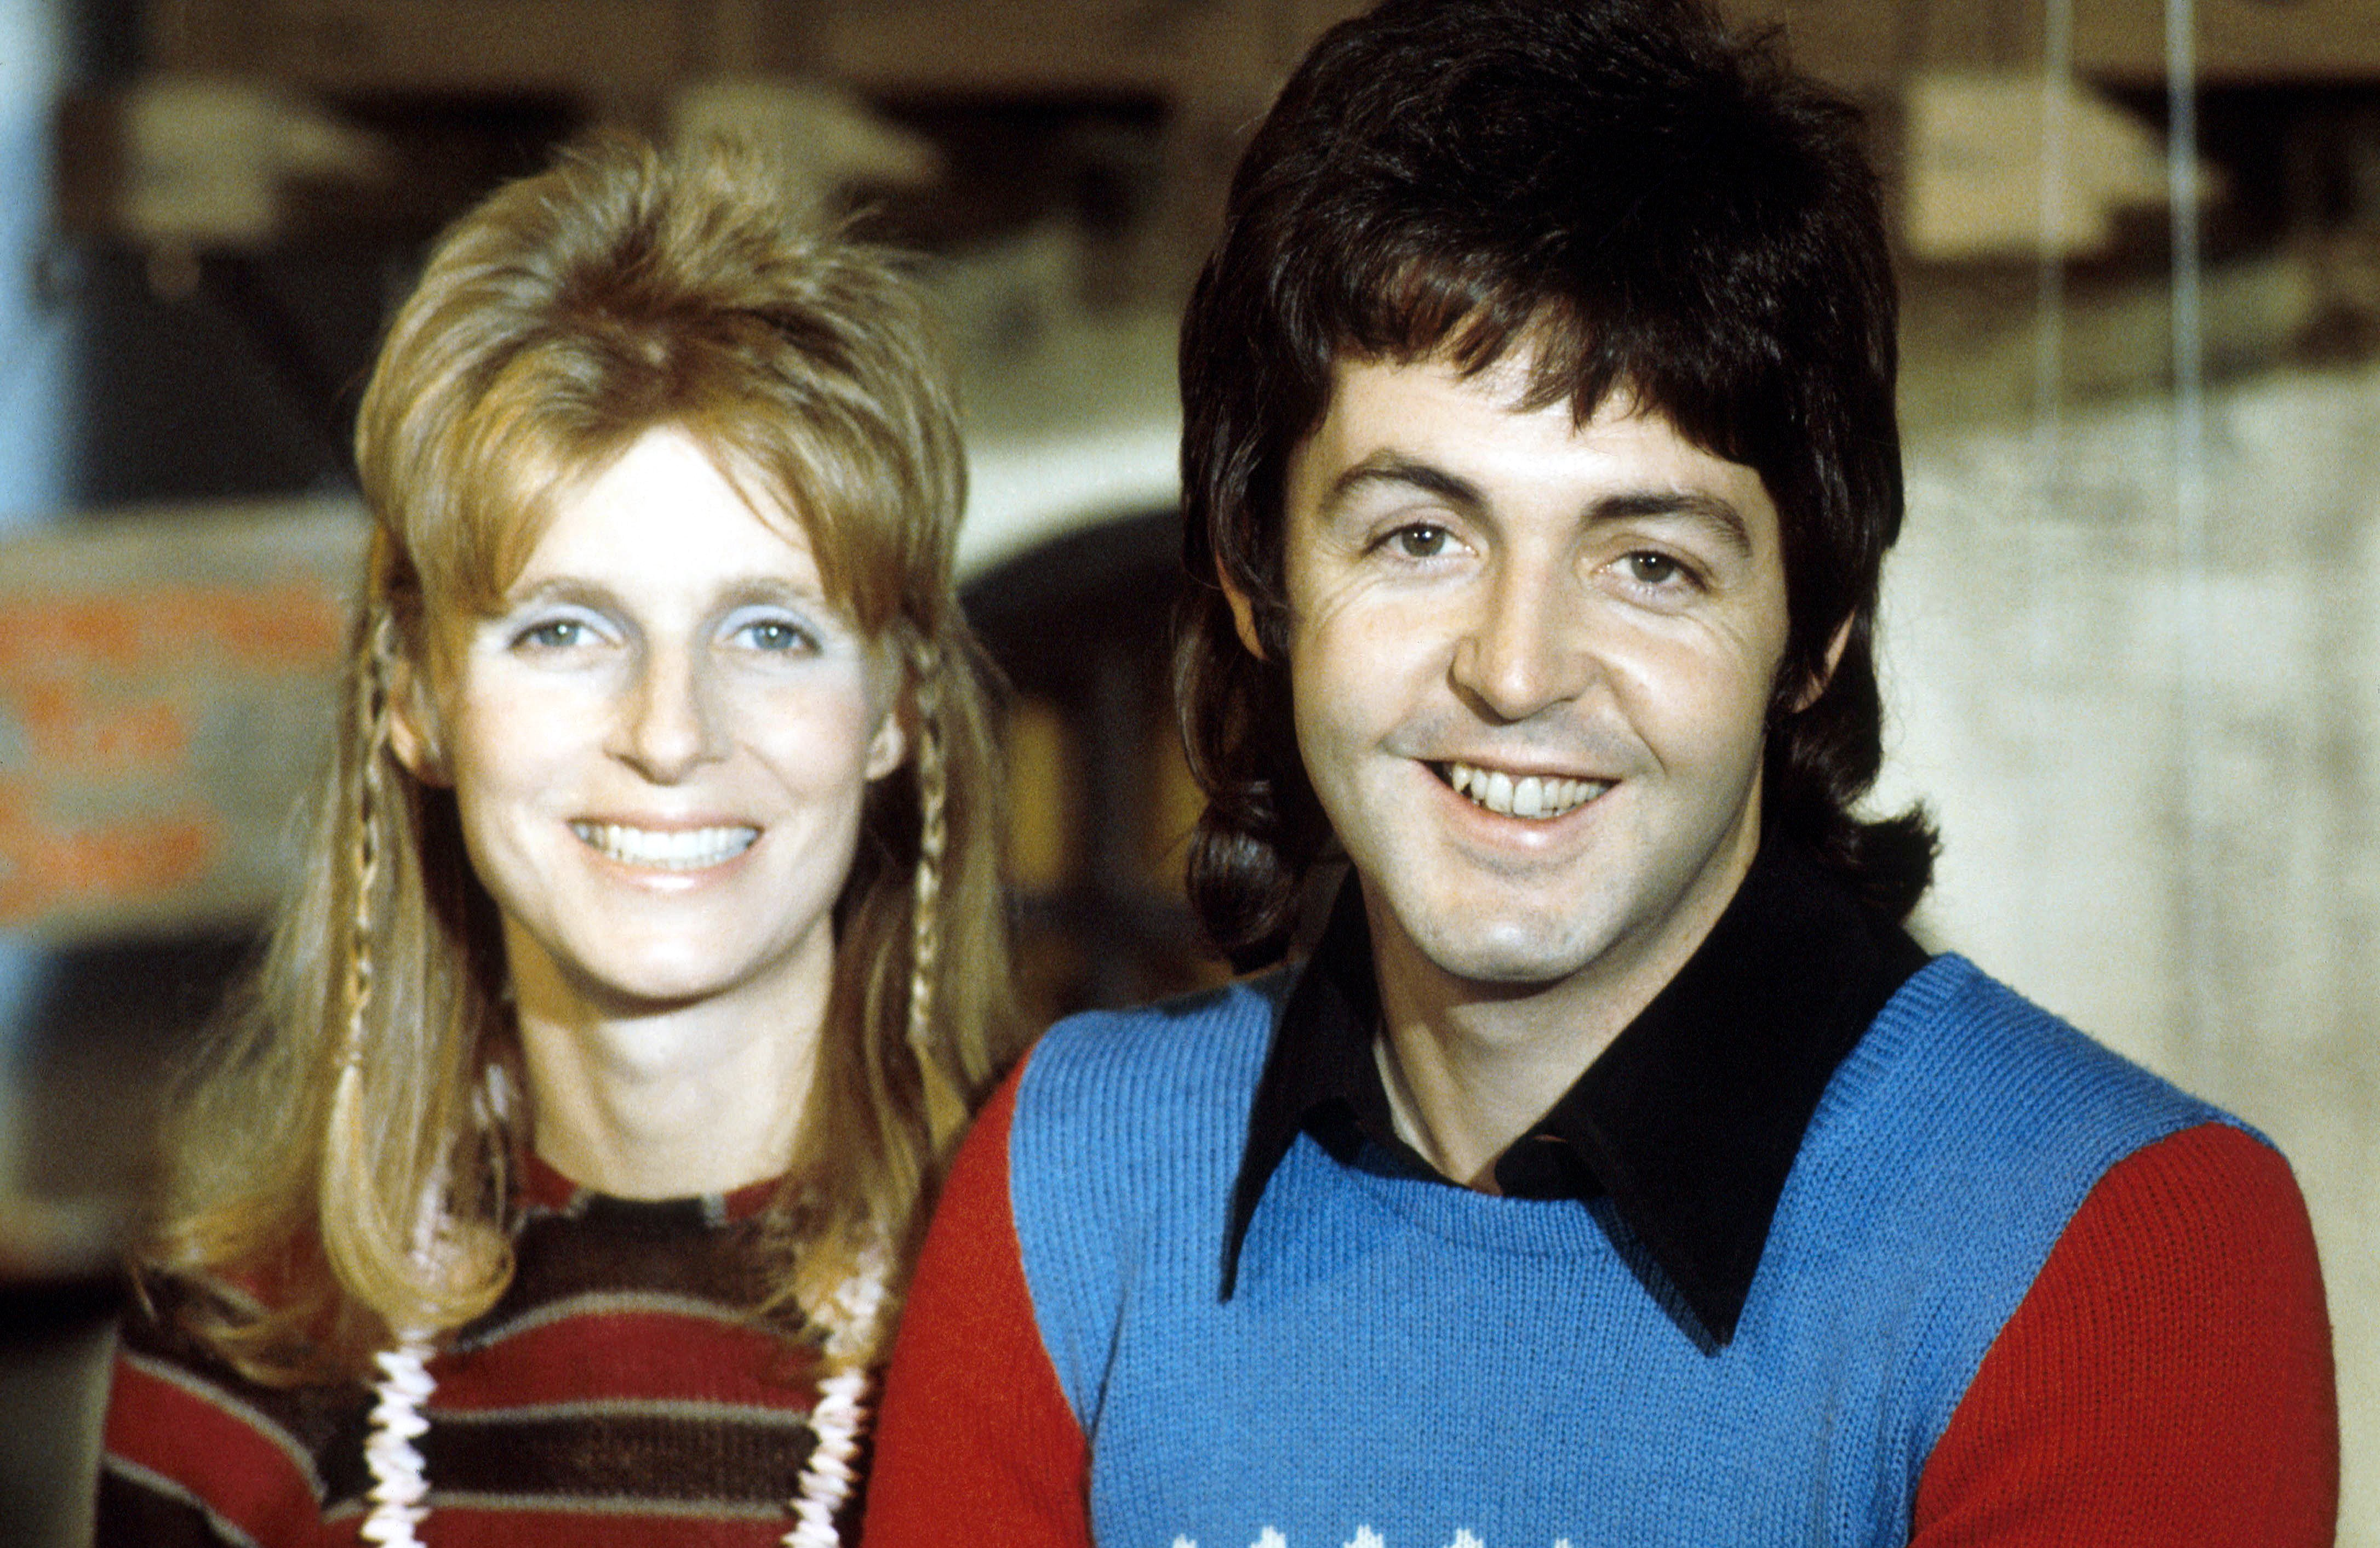 Image Credits: Getty Images / Michael Putland | Linda McCartney (1941 - 1998) and husband Paul McCartney of Wings posed in 1973.